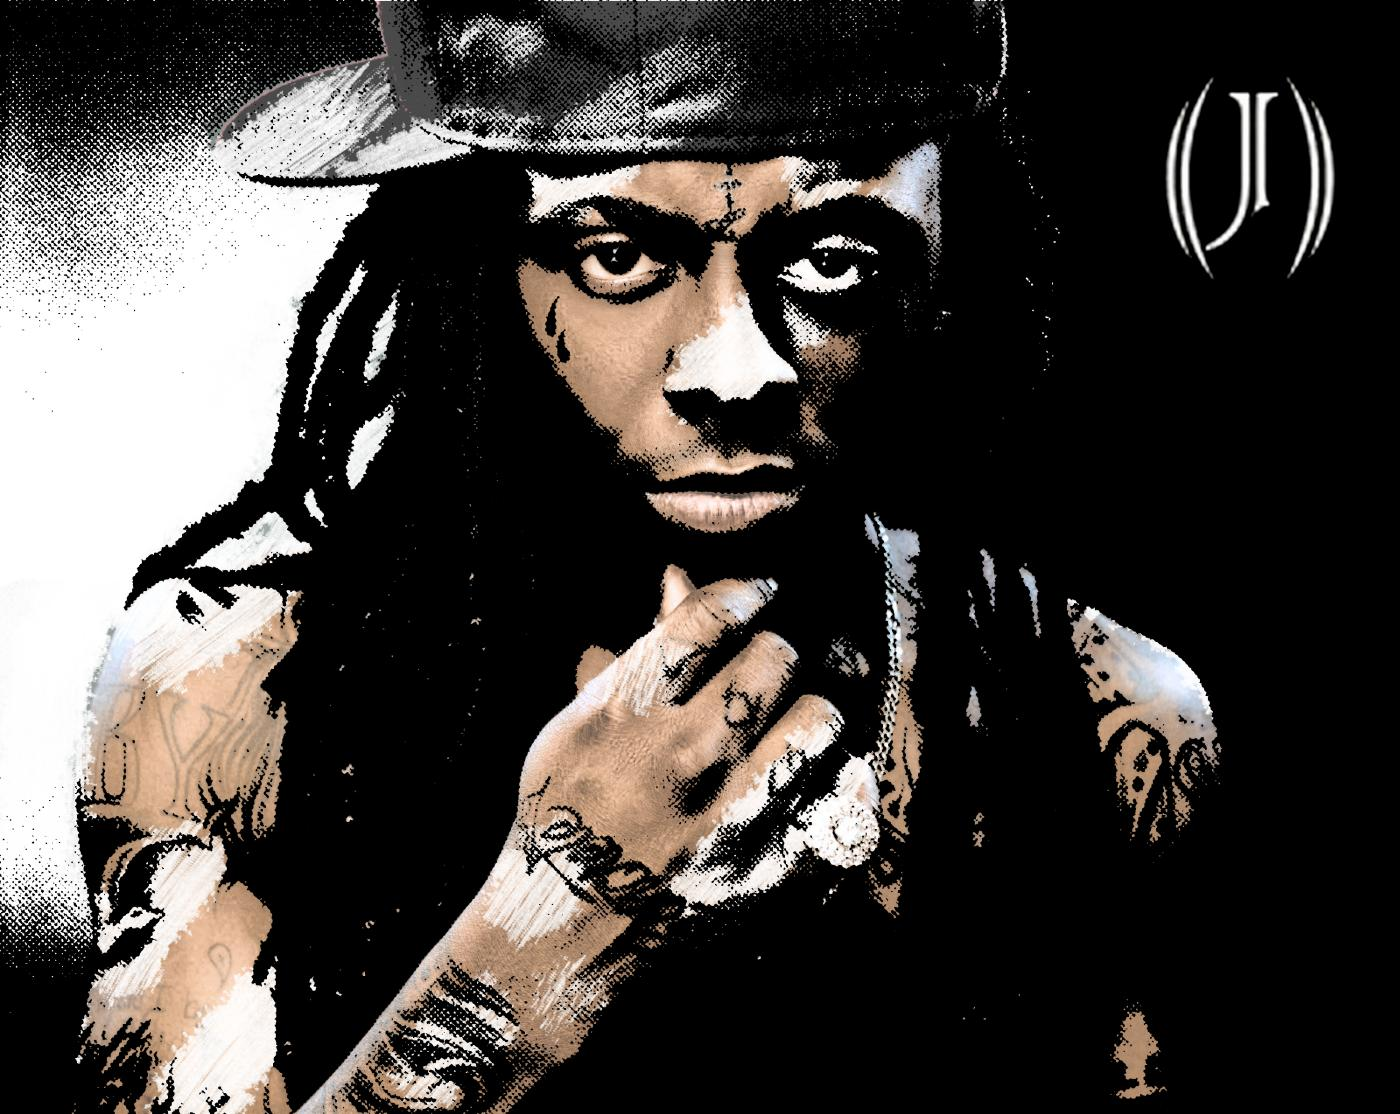 Lil Wayne Wallpaper Download